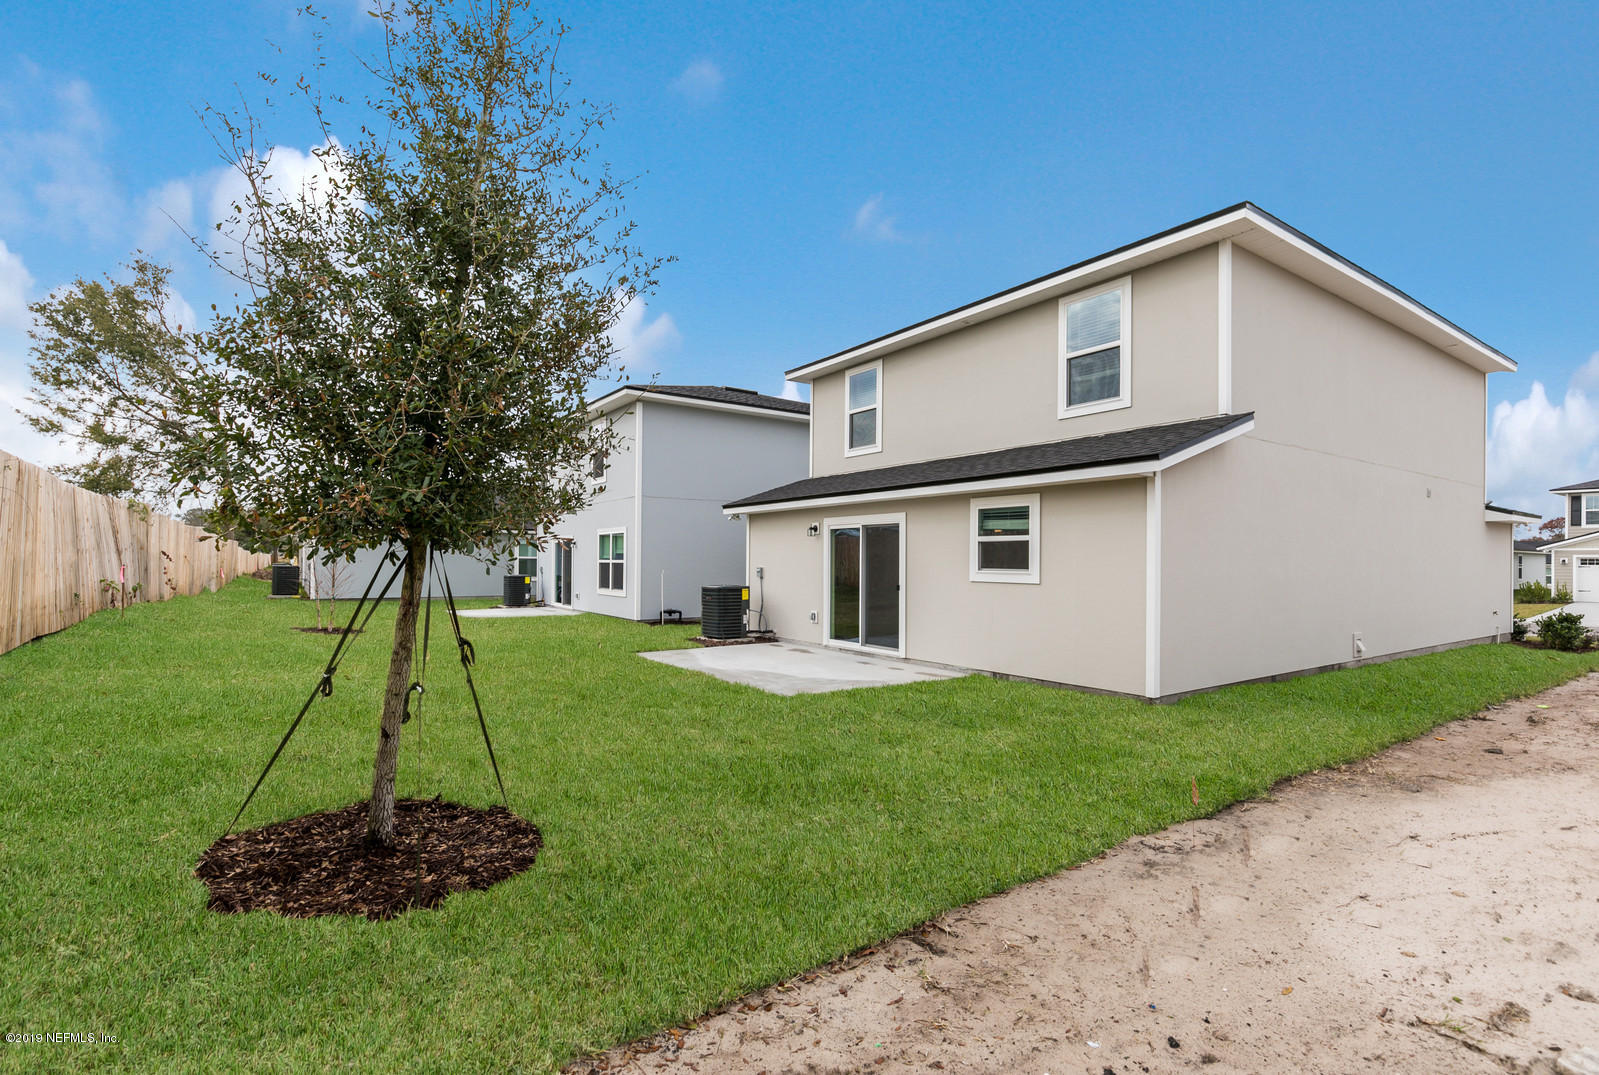 7328 TOWNSEND VILLAGE, JACKSONVILLE, FLORIDA 32277, 3 Bedrooms Bedrooms, ,2 BathroomsBathrooms,Residential - single family,For sale,TOWNSEND VILLAGE,973859